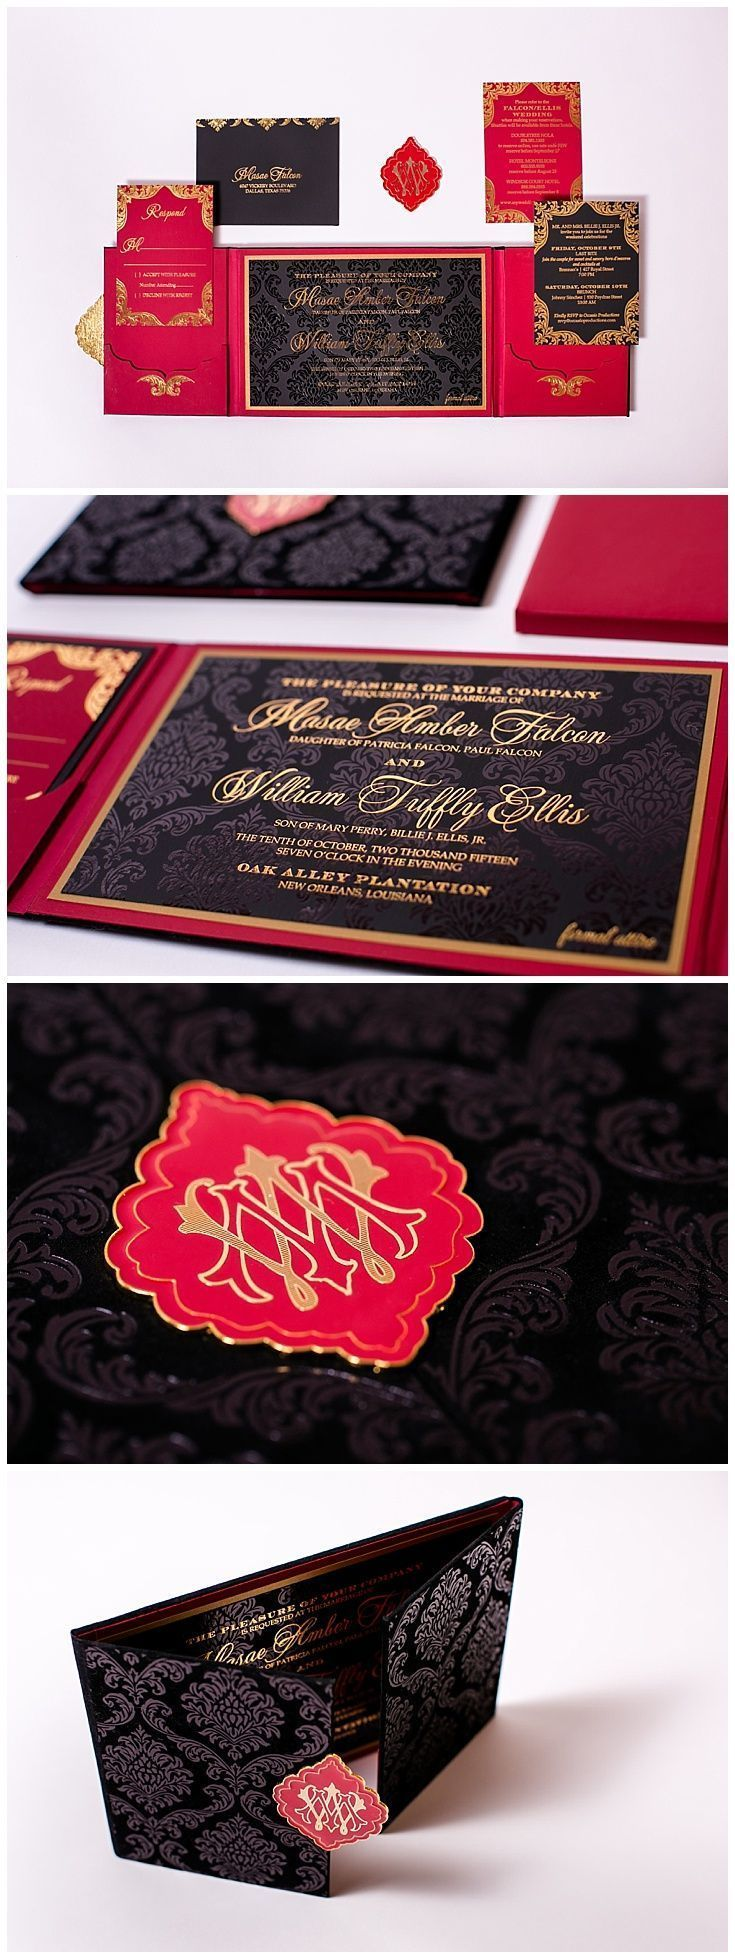 Velvet invitations in red, black and gold. These wedding invitations ...